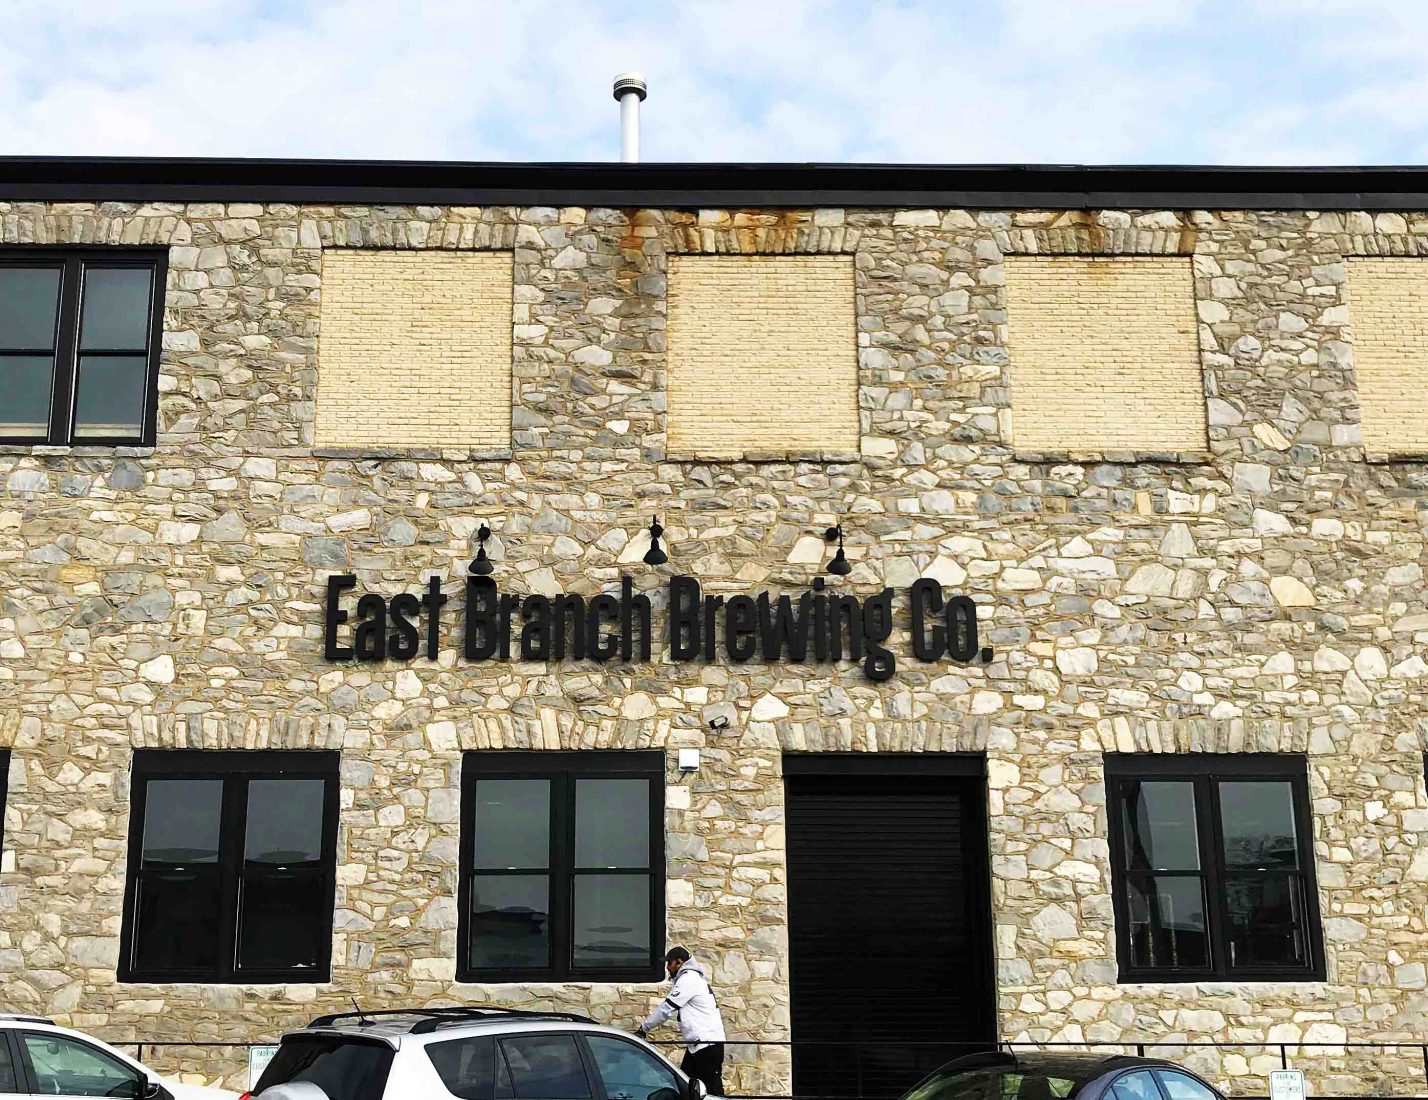 405. East Branch Brewing, Downingtown PA, 2019